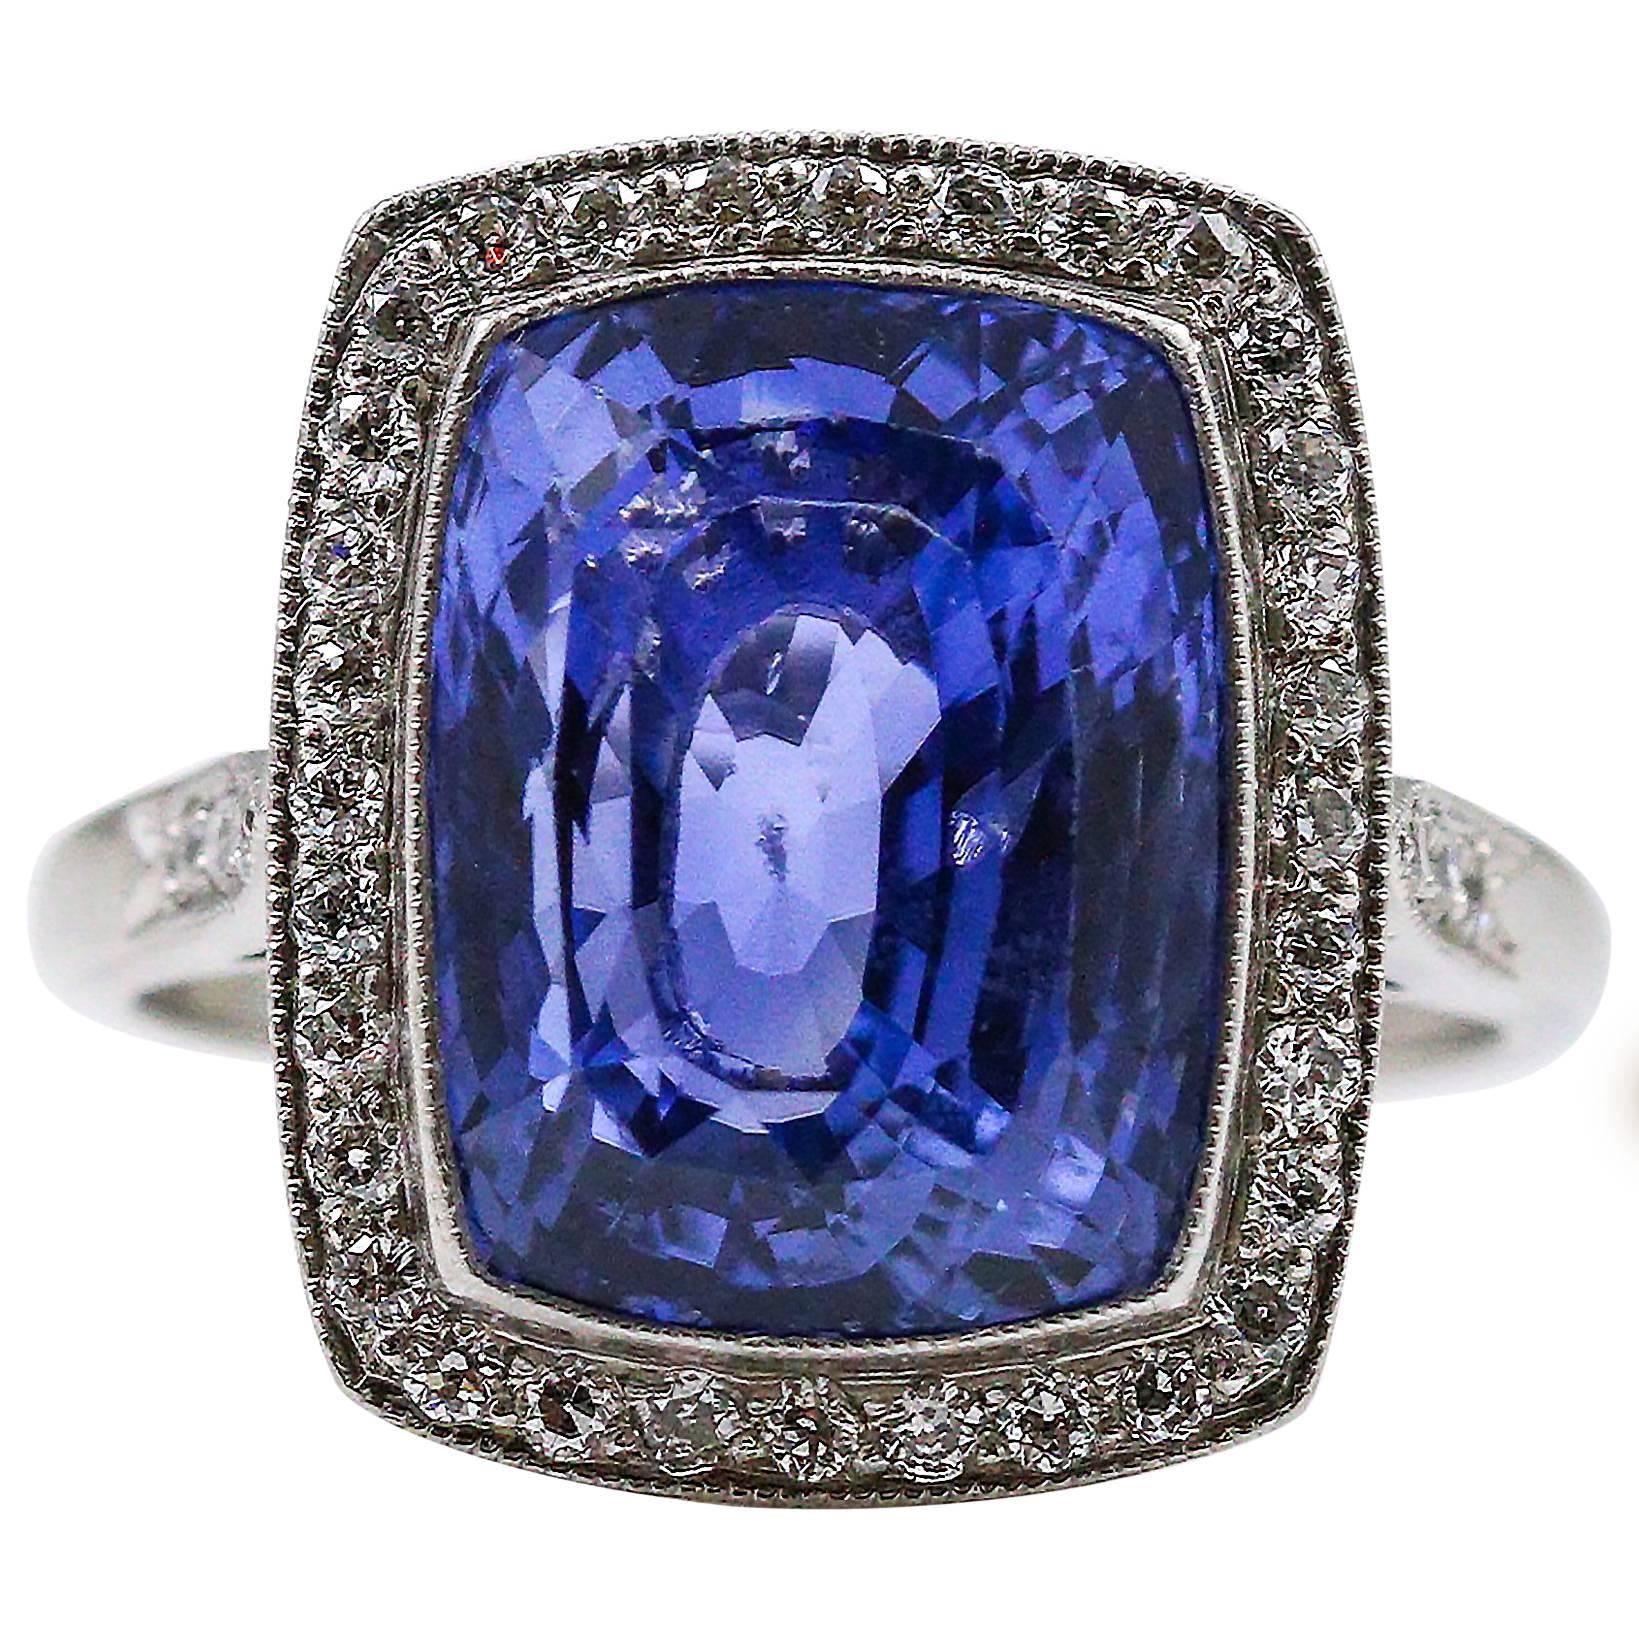 8.59 Carat Unheated Ceylon Sapphire Diamond Platinum Ring